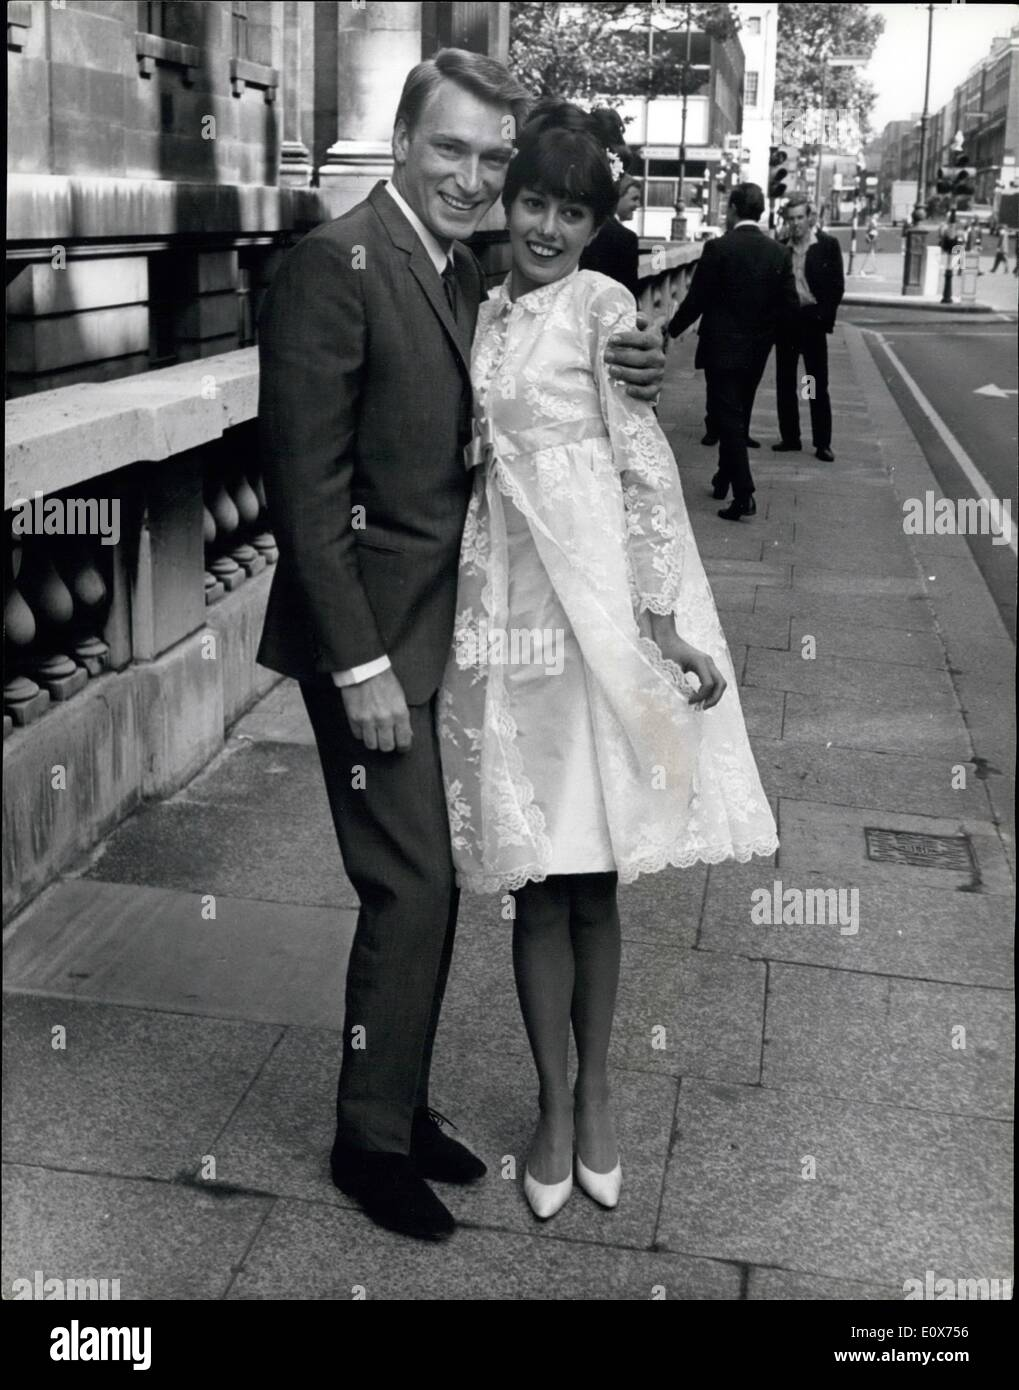 Jul. 07, 1965 - Singer Frank Ifield Weds: Popular singer Frank Ifield was married at Marylbone Register office earlyStock Photo